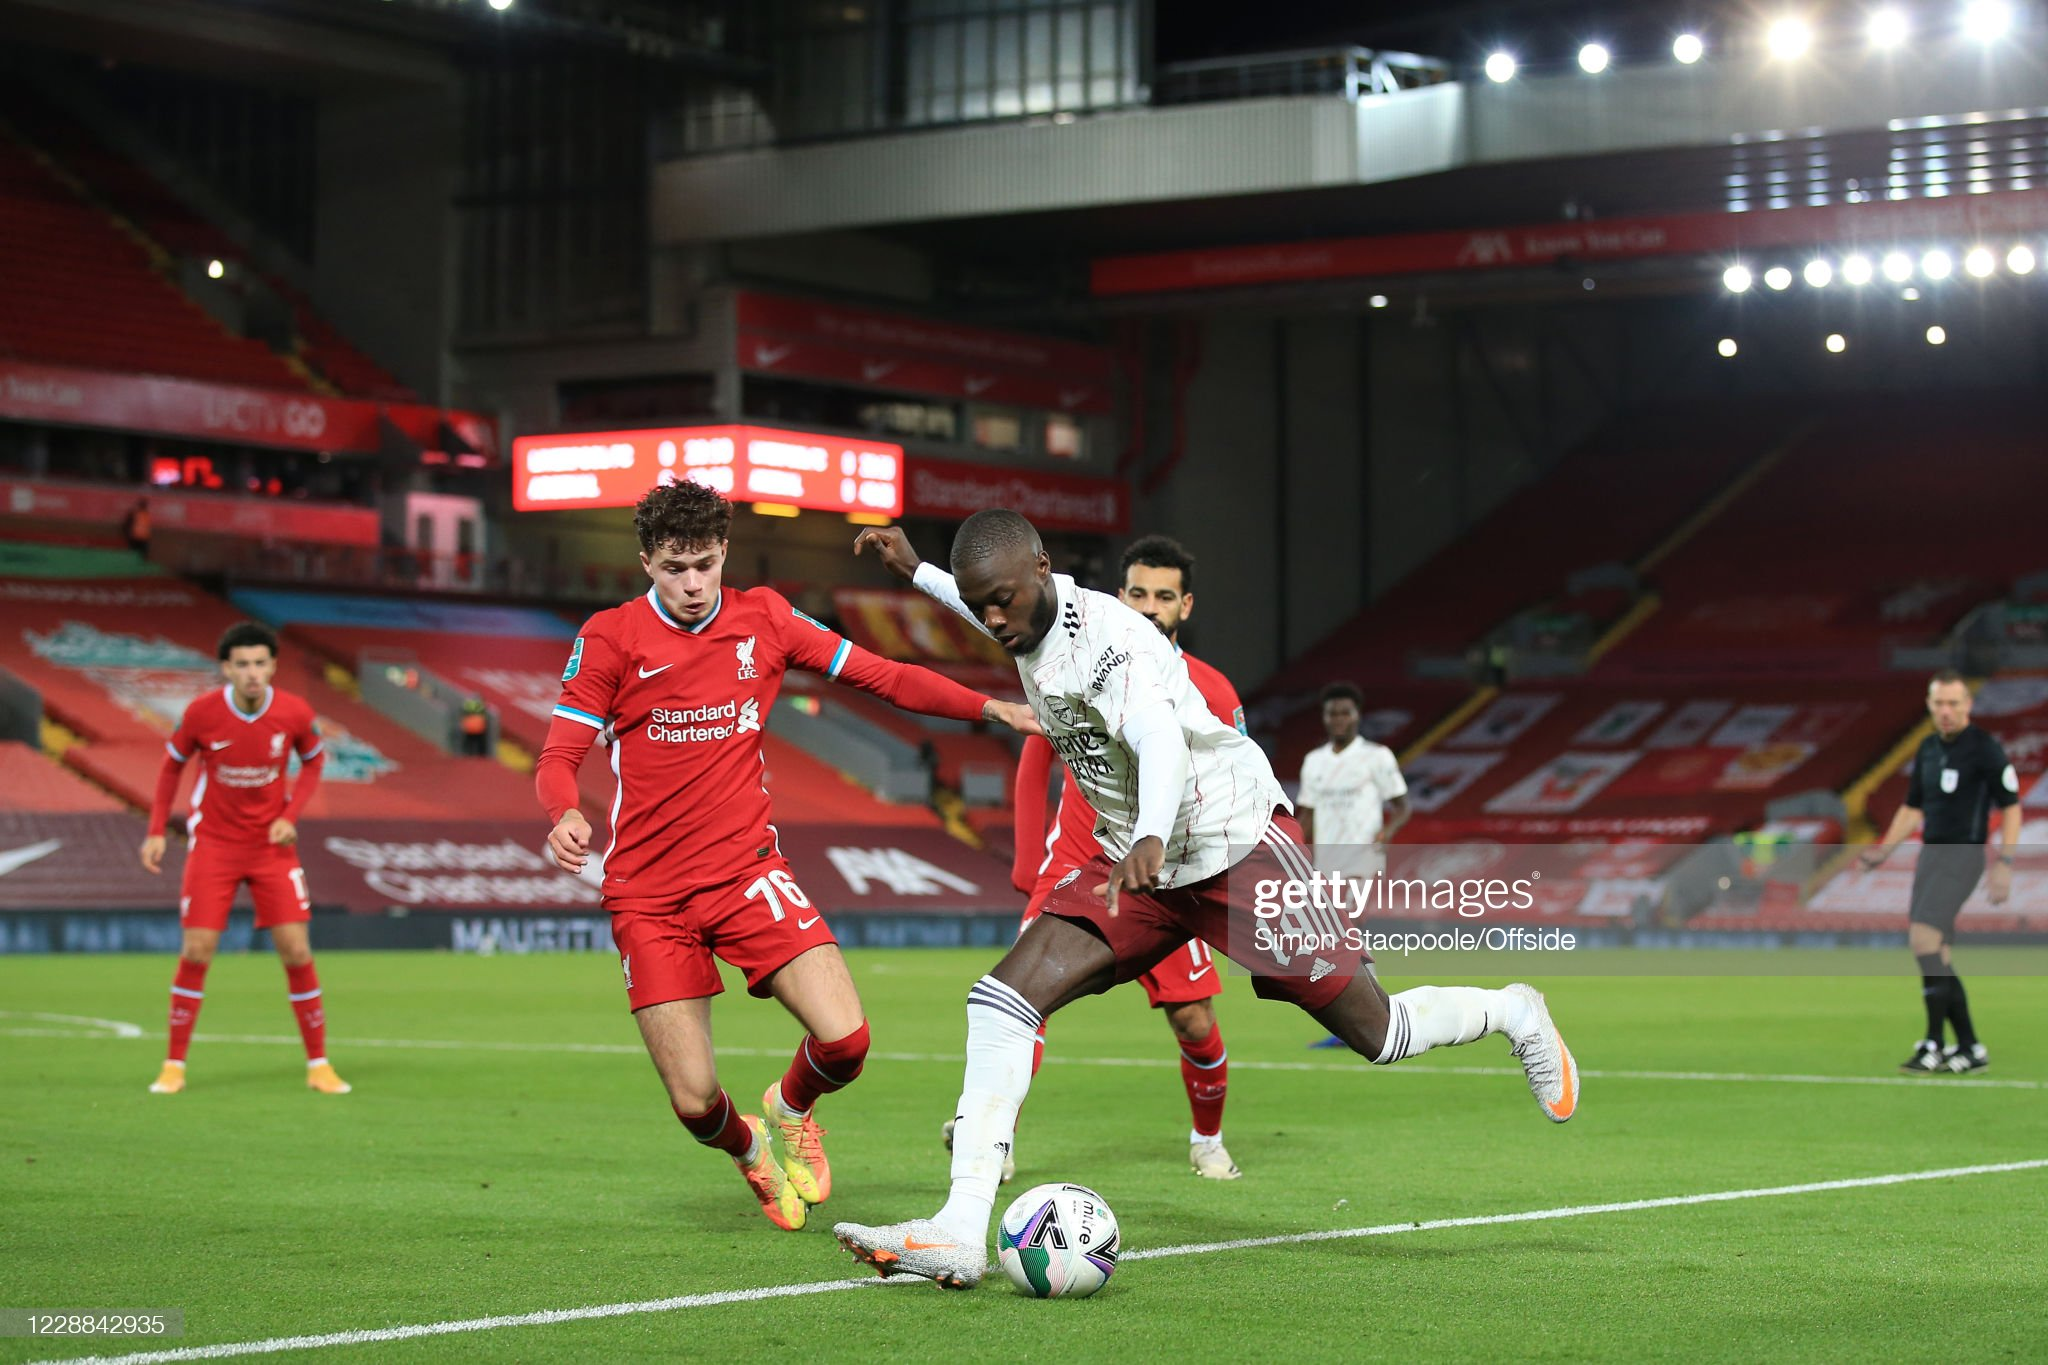 Arsenal vs Liverpool preview, prediction and odds